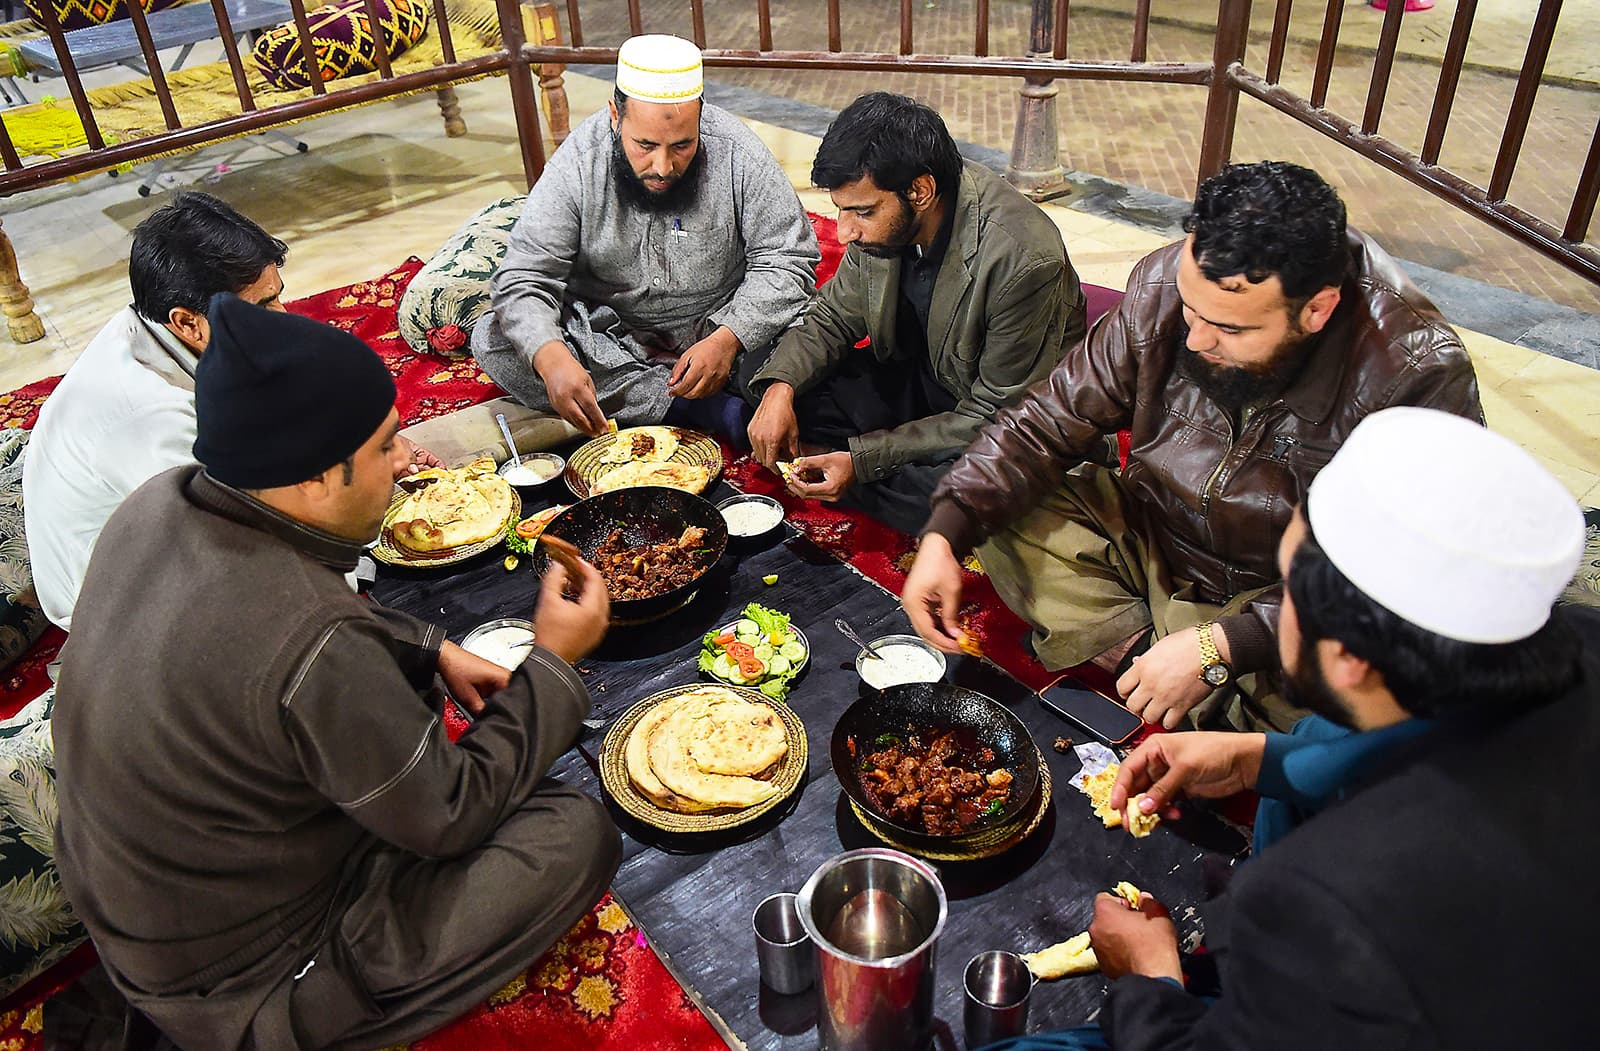 Customers eat grilled meat at the Charsi Tikka restaurant in Namak Mandi in Peshawar. — AFP